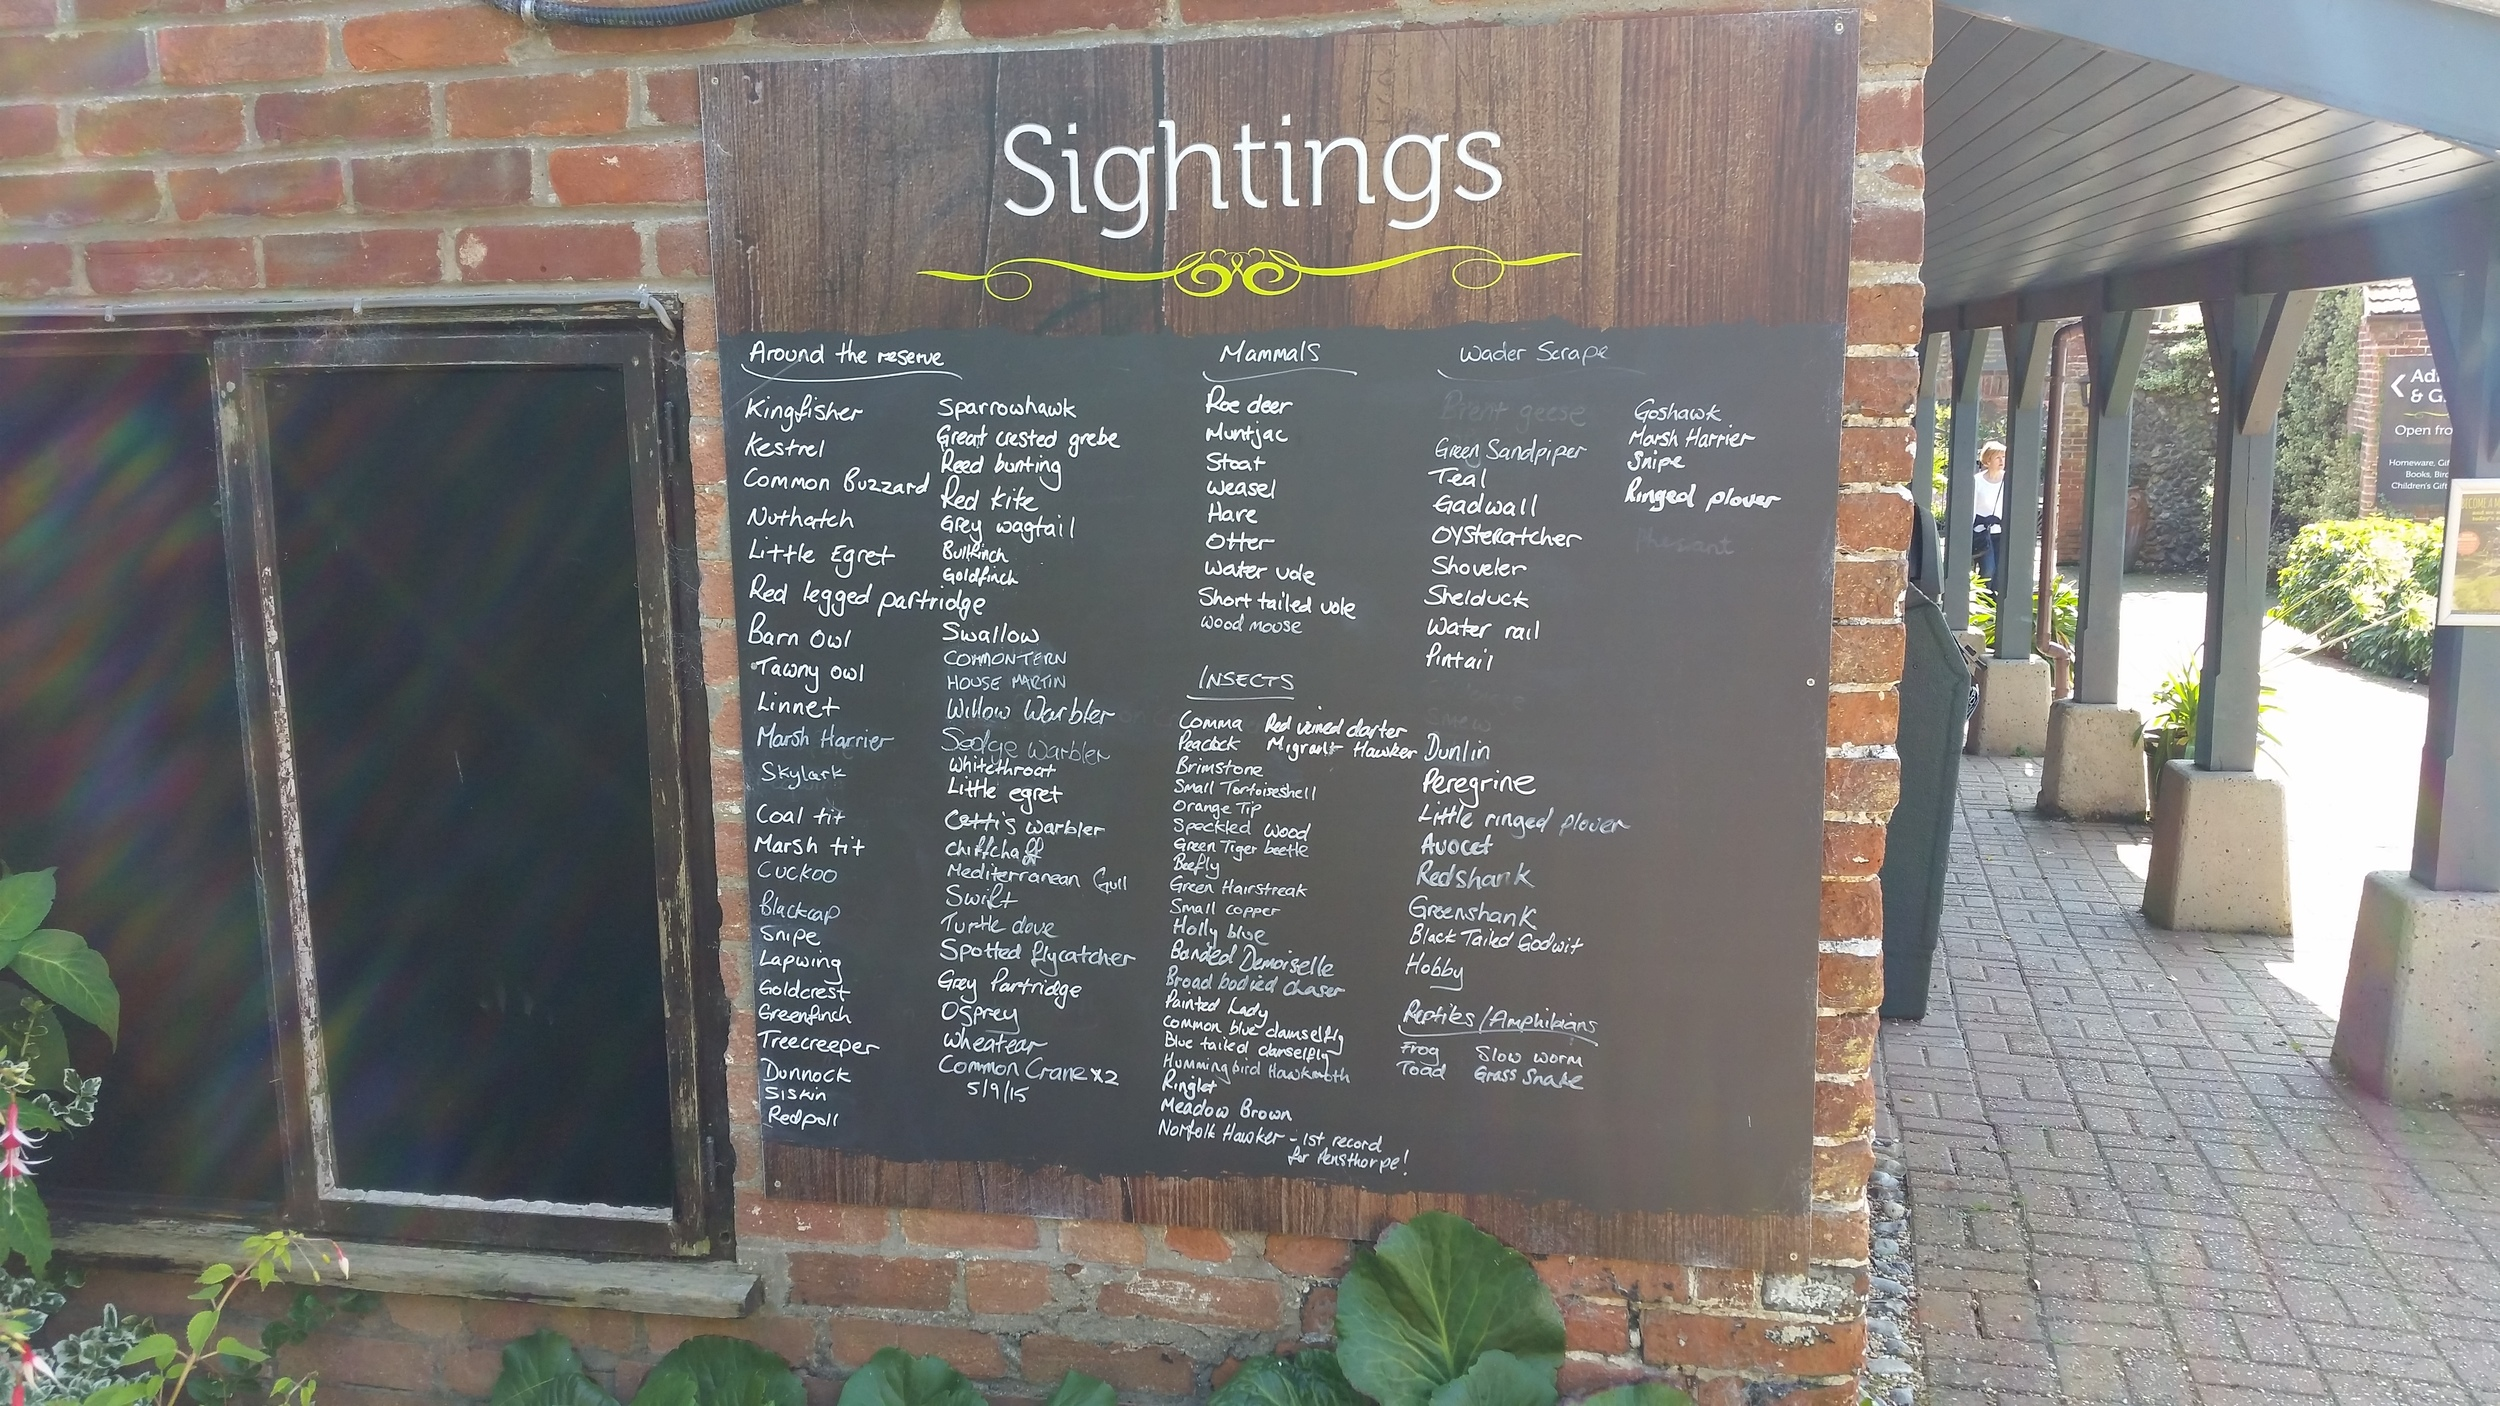 Always love seeing birdwatching records in areas I'm visiting